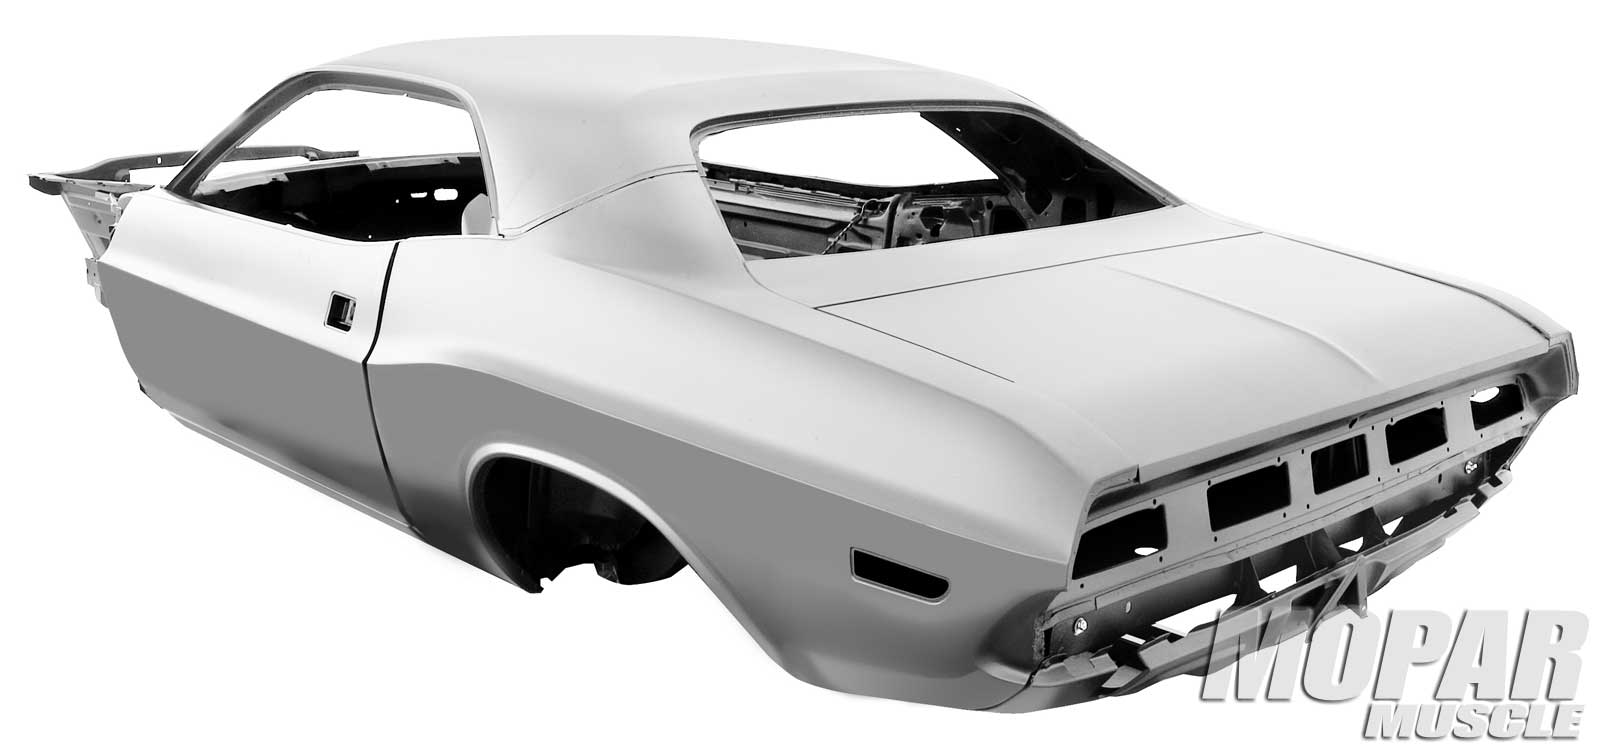 1970 Dodge Challenger Classic Car Replacement Bodies